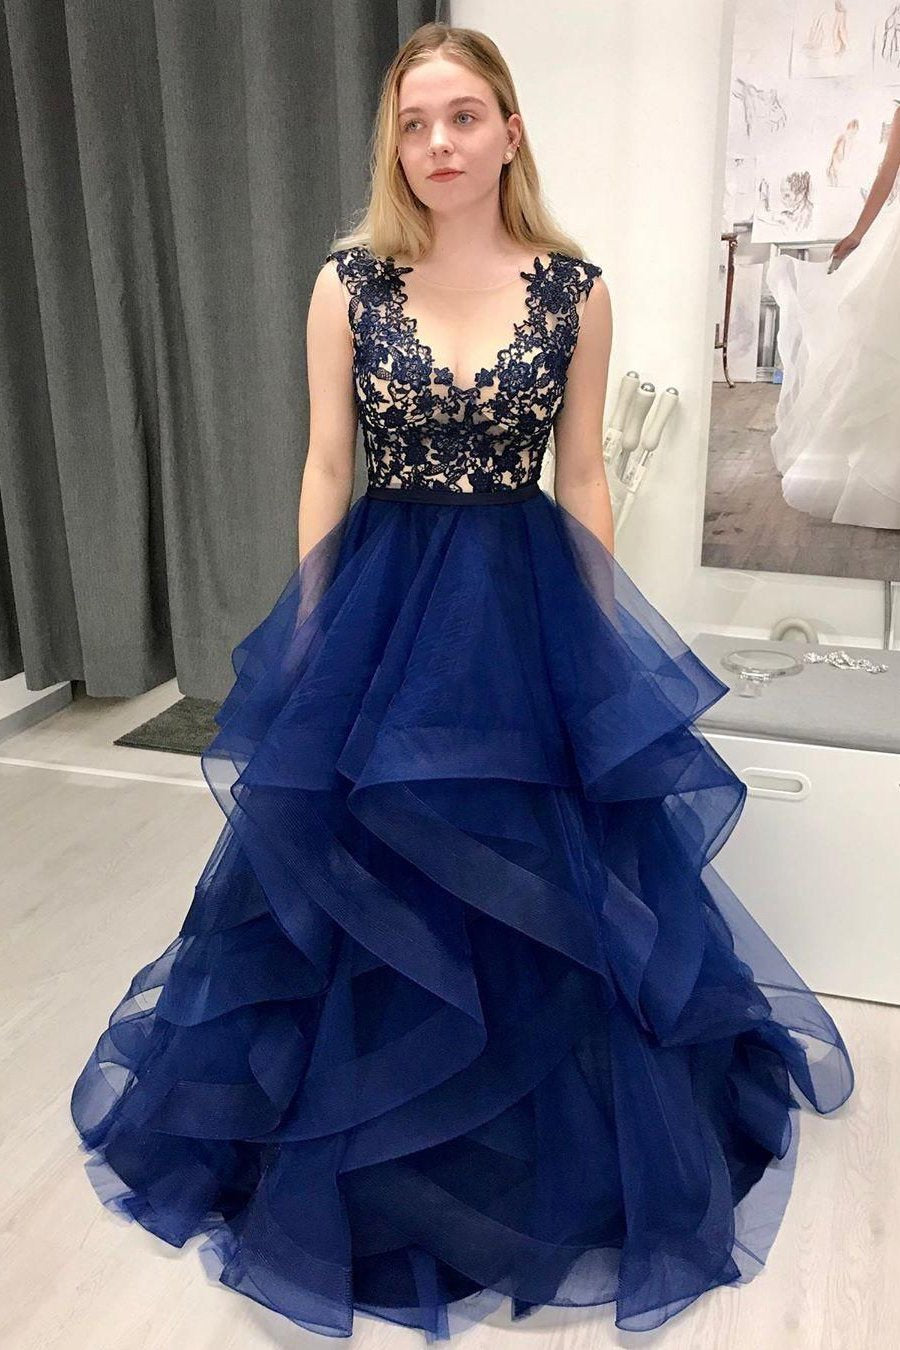 Prom dresses long sheer neck ruffles appliques illusion sweet 16 quinceanera dress mg195